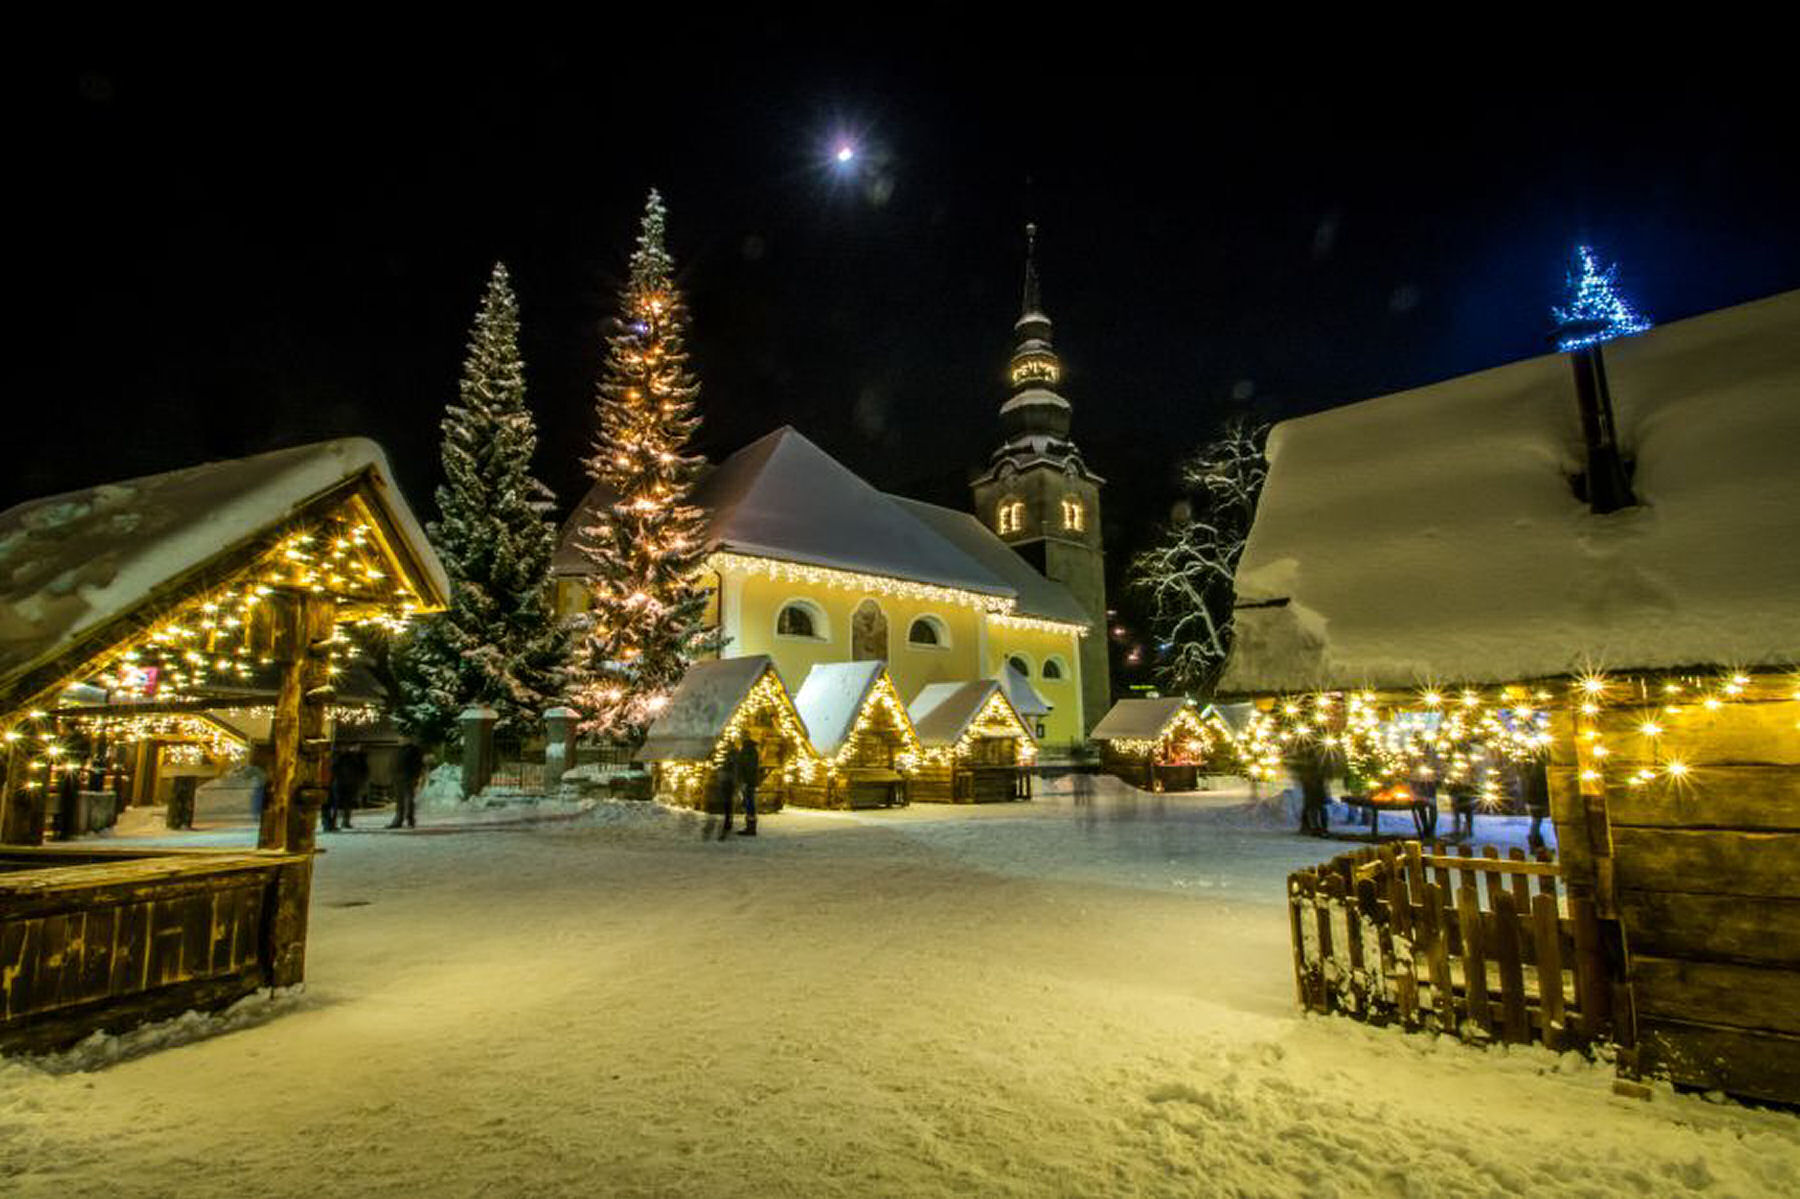 The centre of Kranjska Gora adorned with Christmas lights and decorations during the festive season